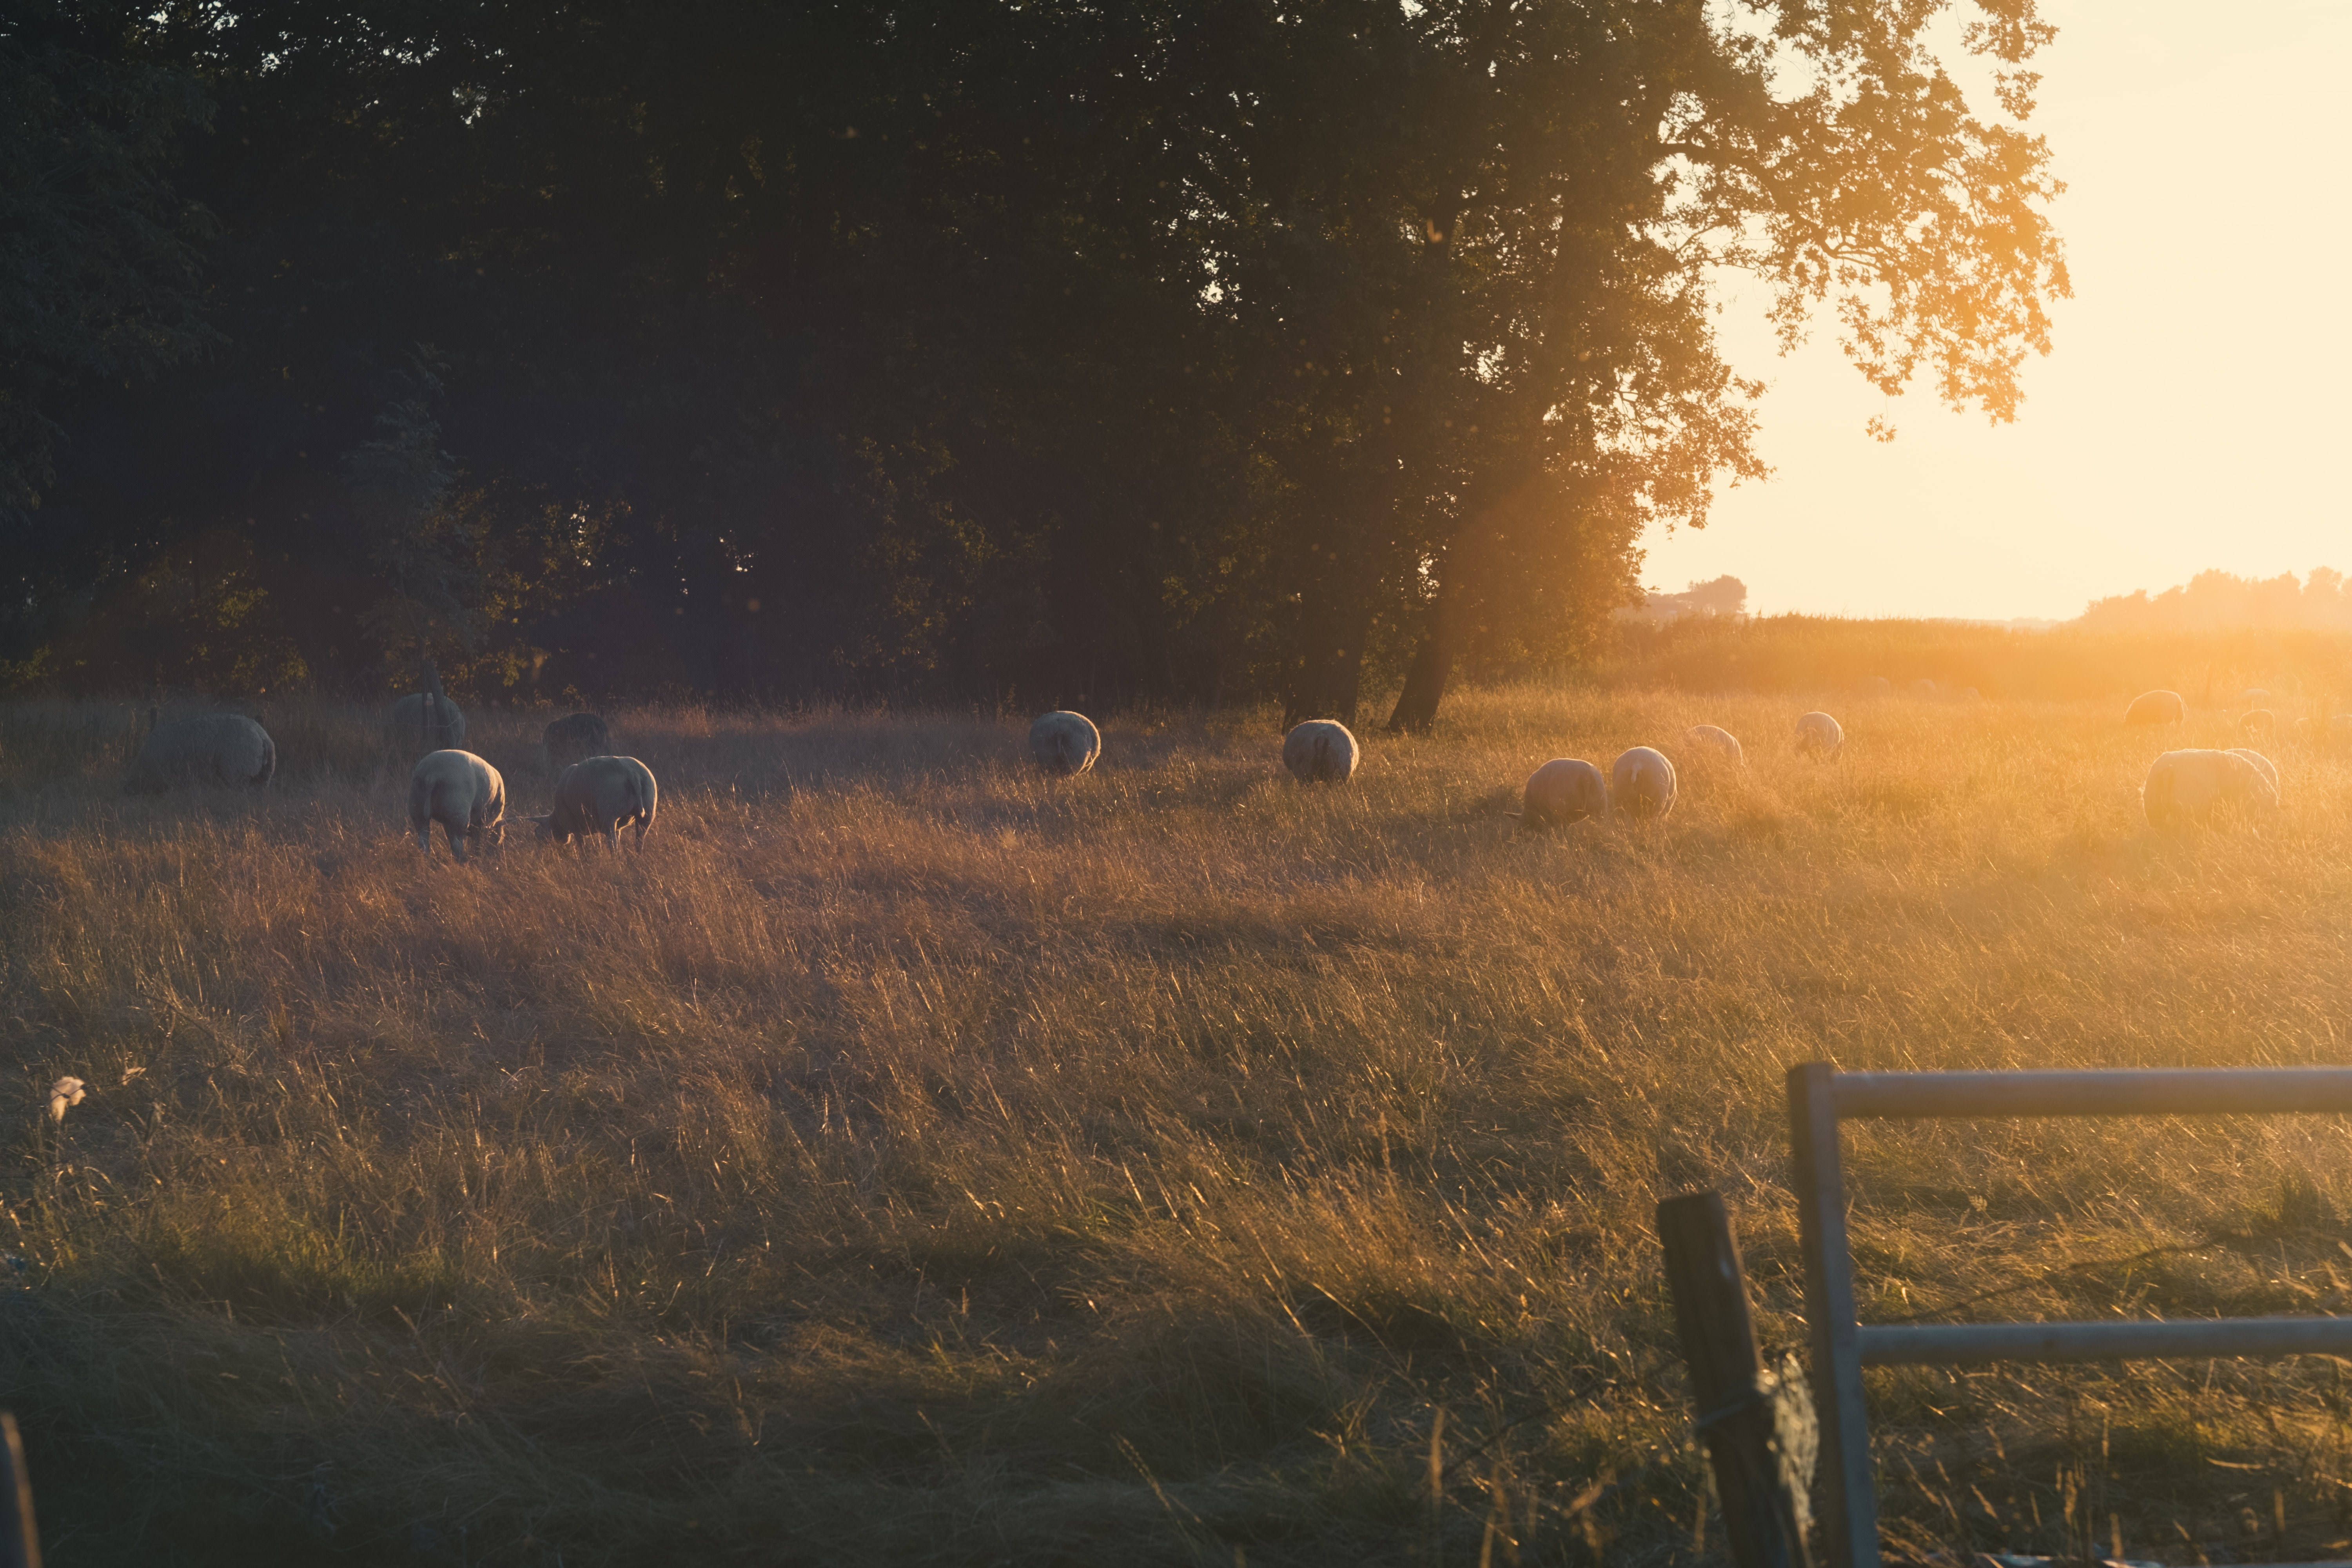 herd of pigs on the field during golden hour